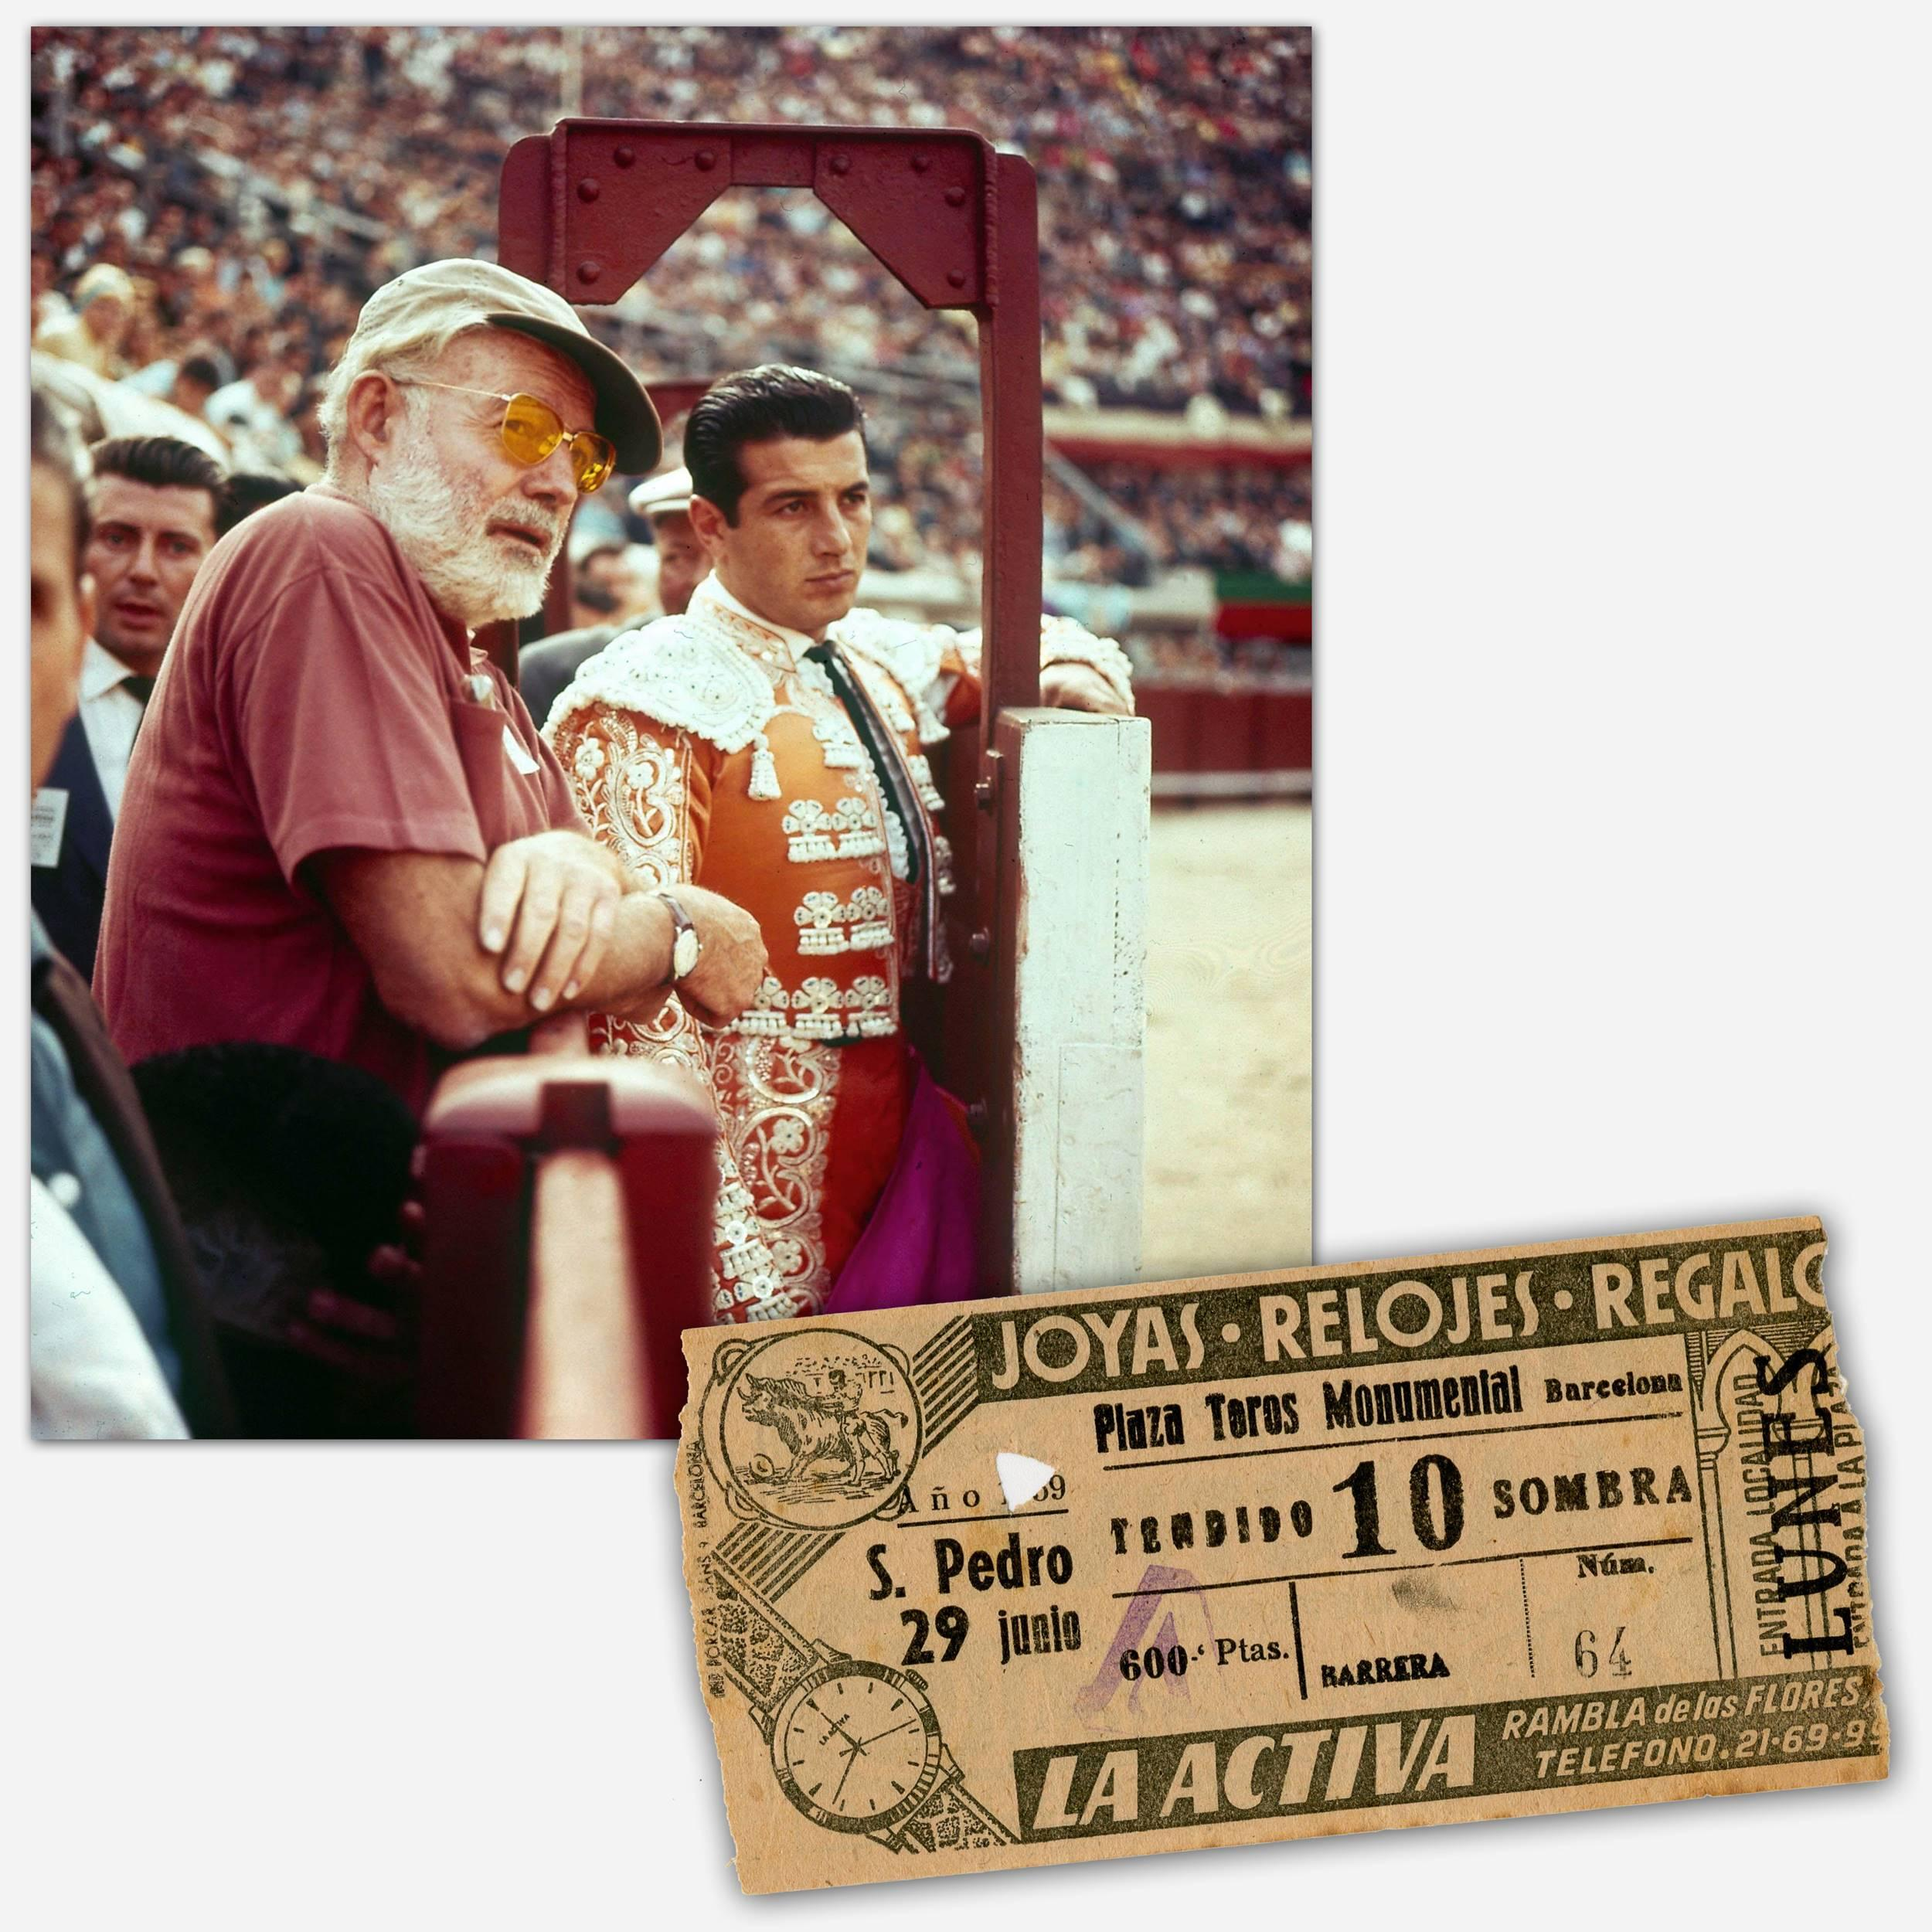 """Ernest Hemingway Owned and Used Ticket for a Bullfight at Barcelona's Plaza Toros Monumental in """"The Dangerous Summer"""" of 1959"""